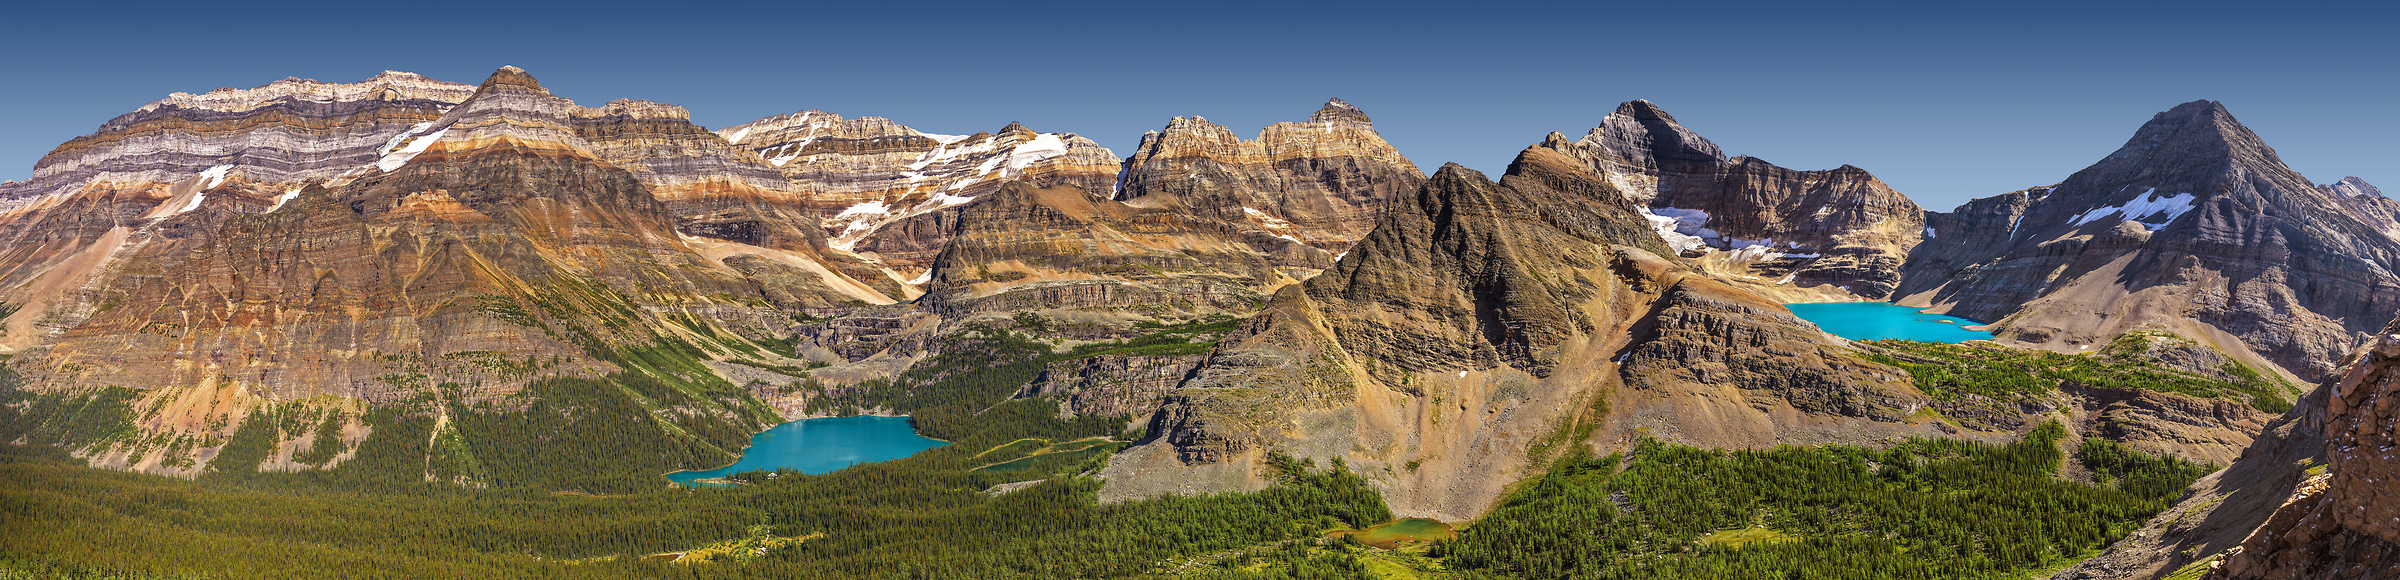 426 megapixels! A very high resolution, large-format VAST photo print of mountains and lakes; fine art landscape photo created by Chris Collacott in Yoho National Park, British Columbia, Canada